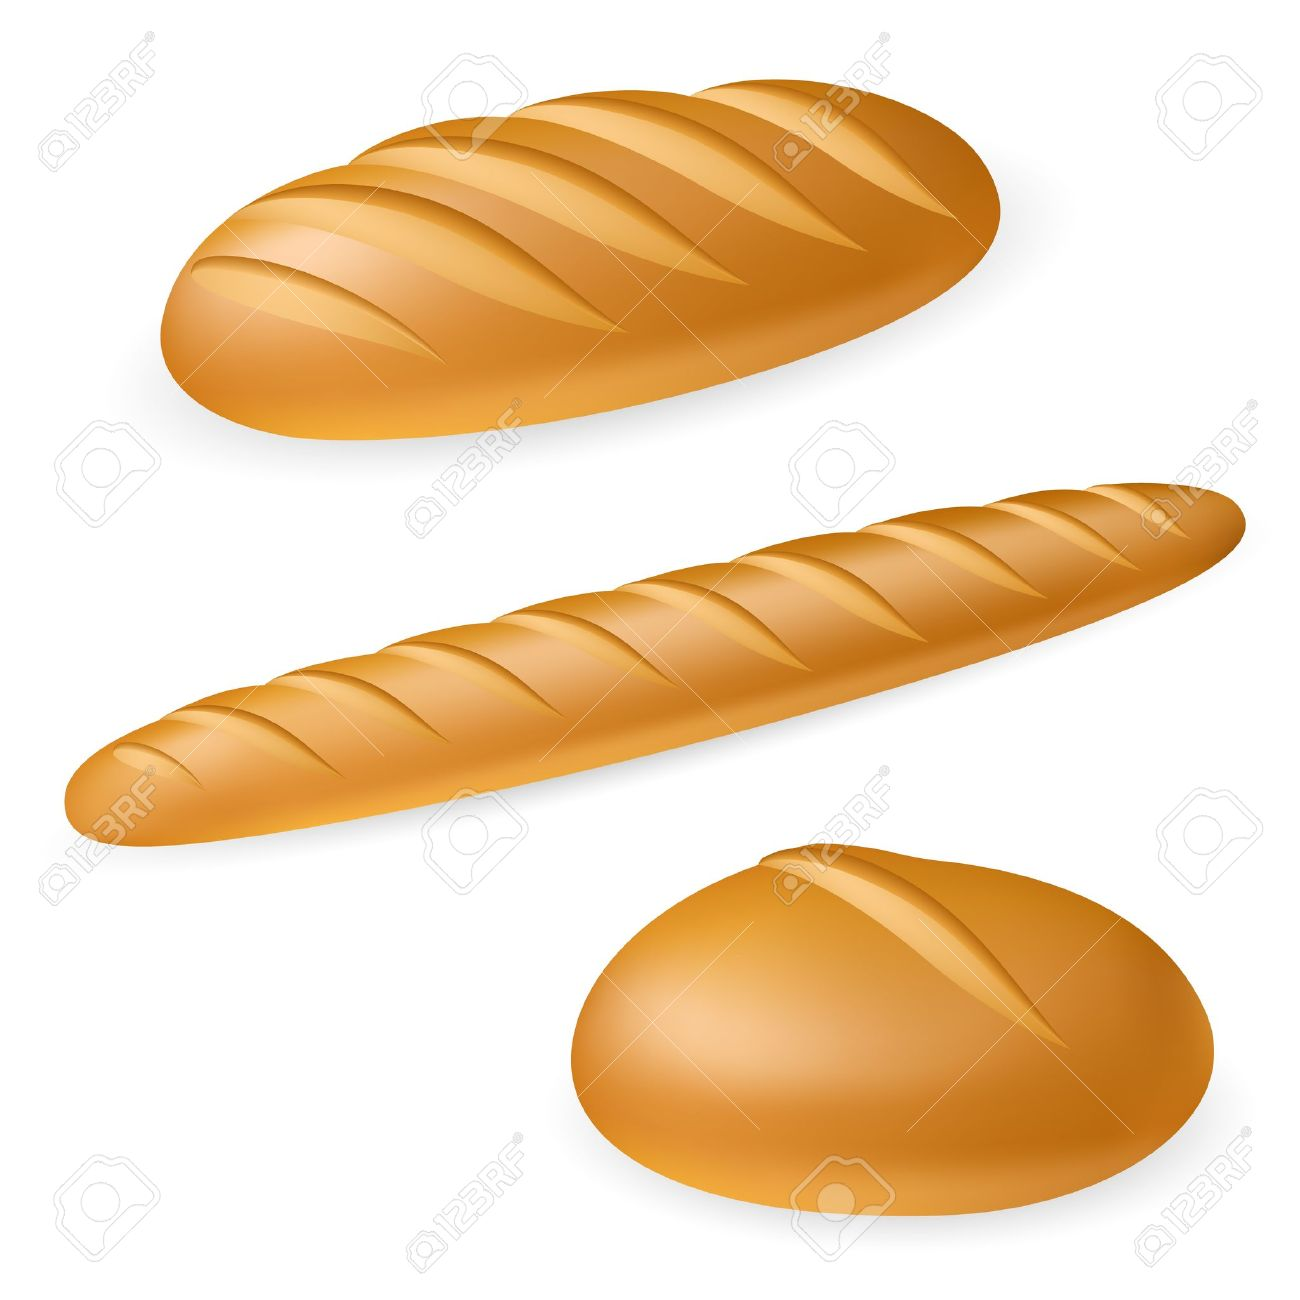 Three realistic bread. Illustration on white background Stock Vector - 10025411